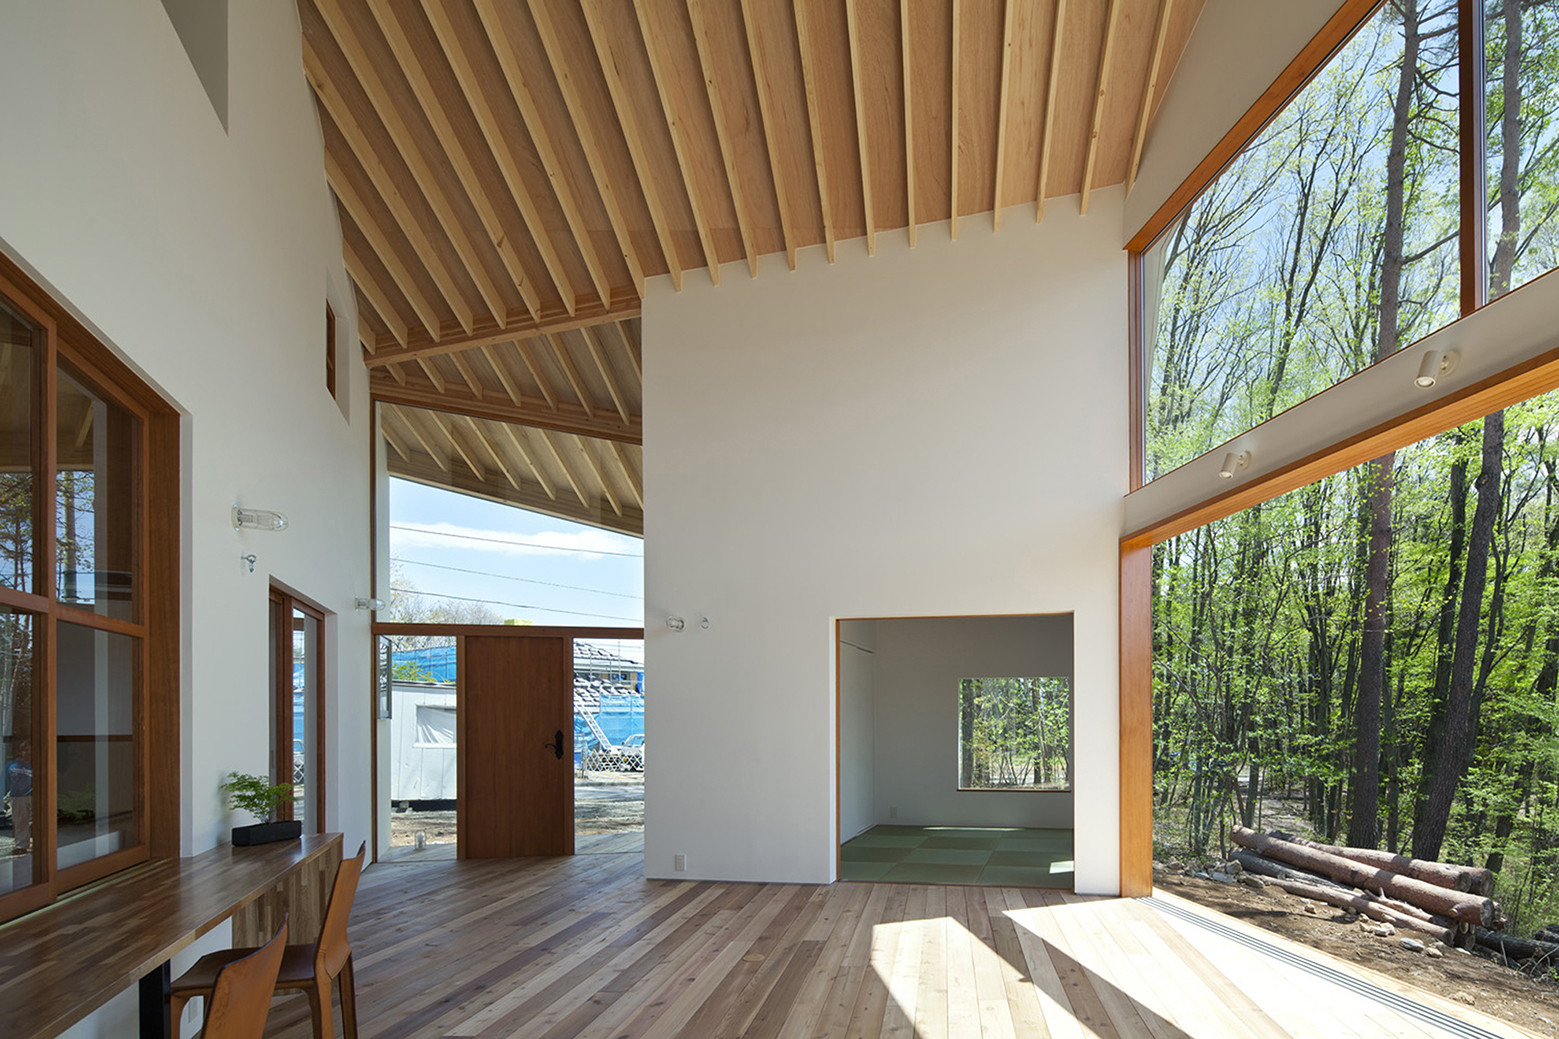 House for Viewing the Mountain / Kawashima Mayumi Architects Design, © Toshiyuki Yano